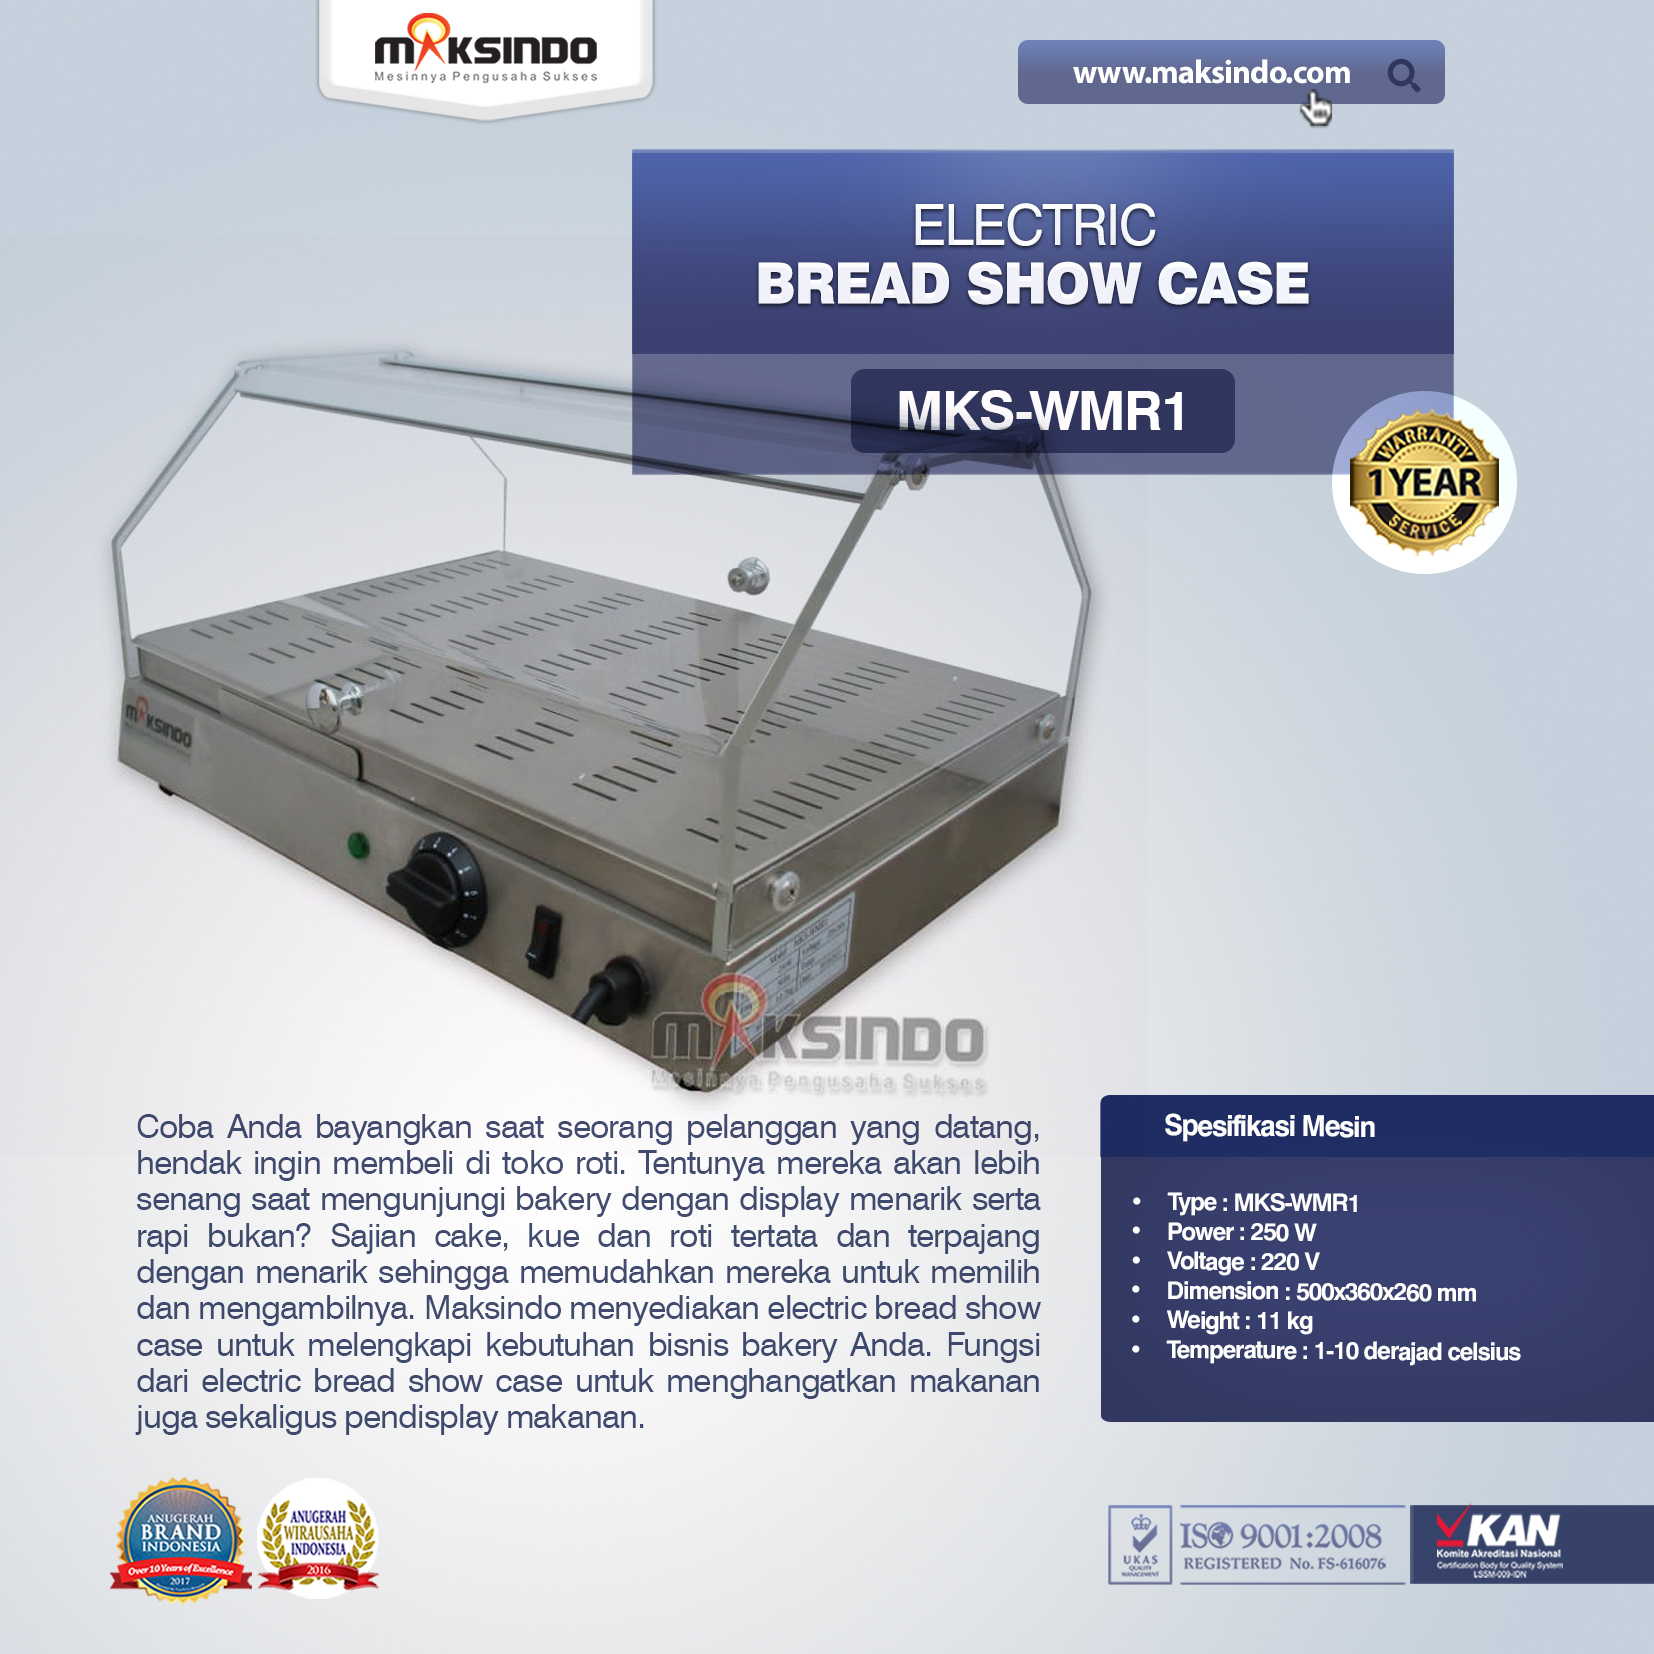 Electric Bread Show Case MKS-WMR1